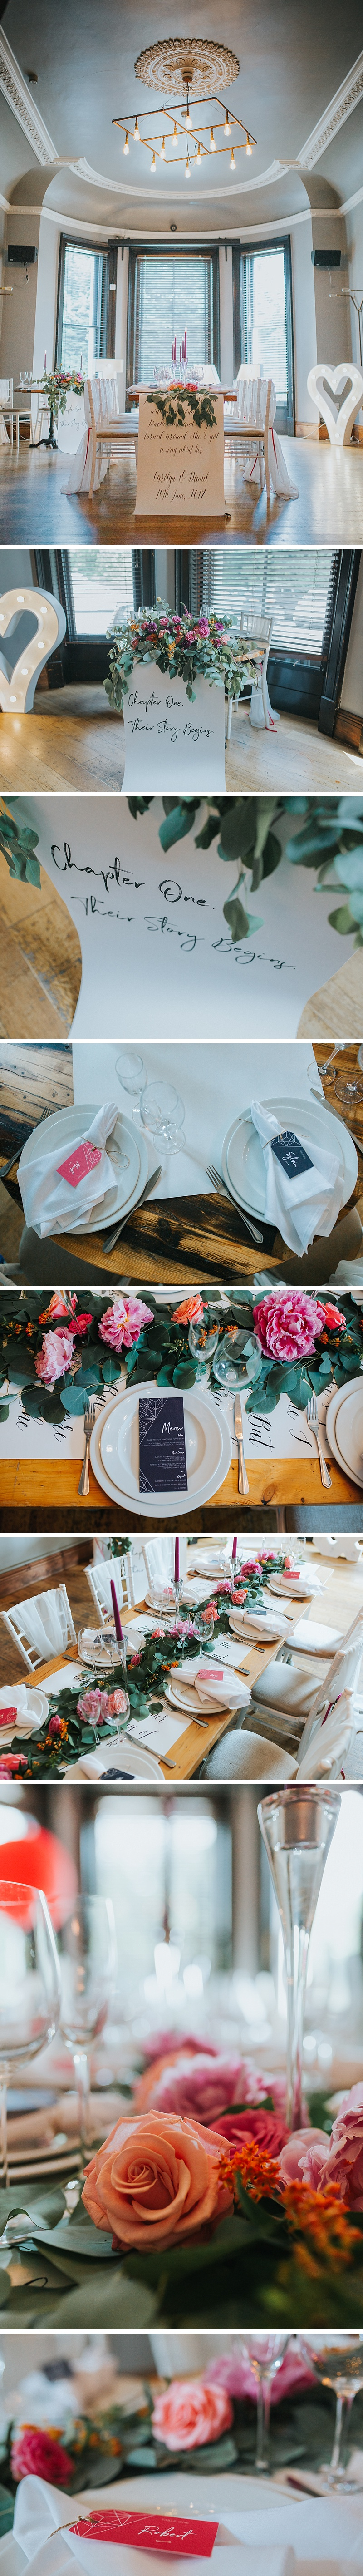 details of a wedding set up in a victorian room